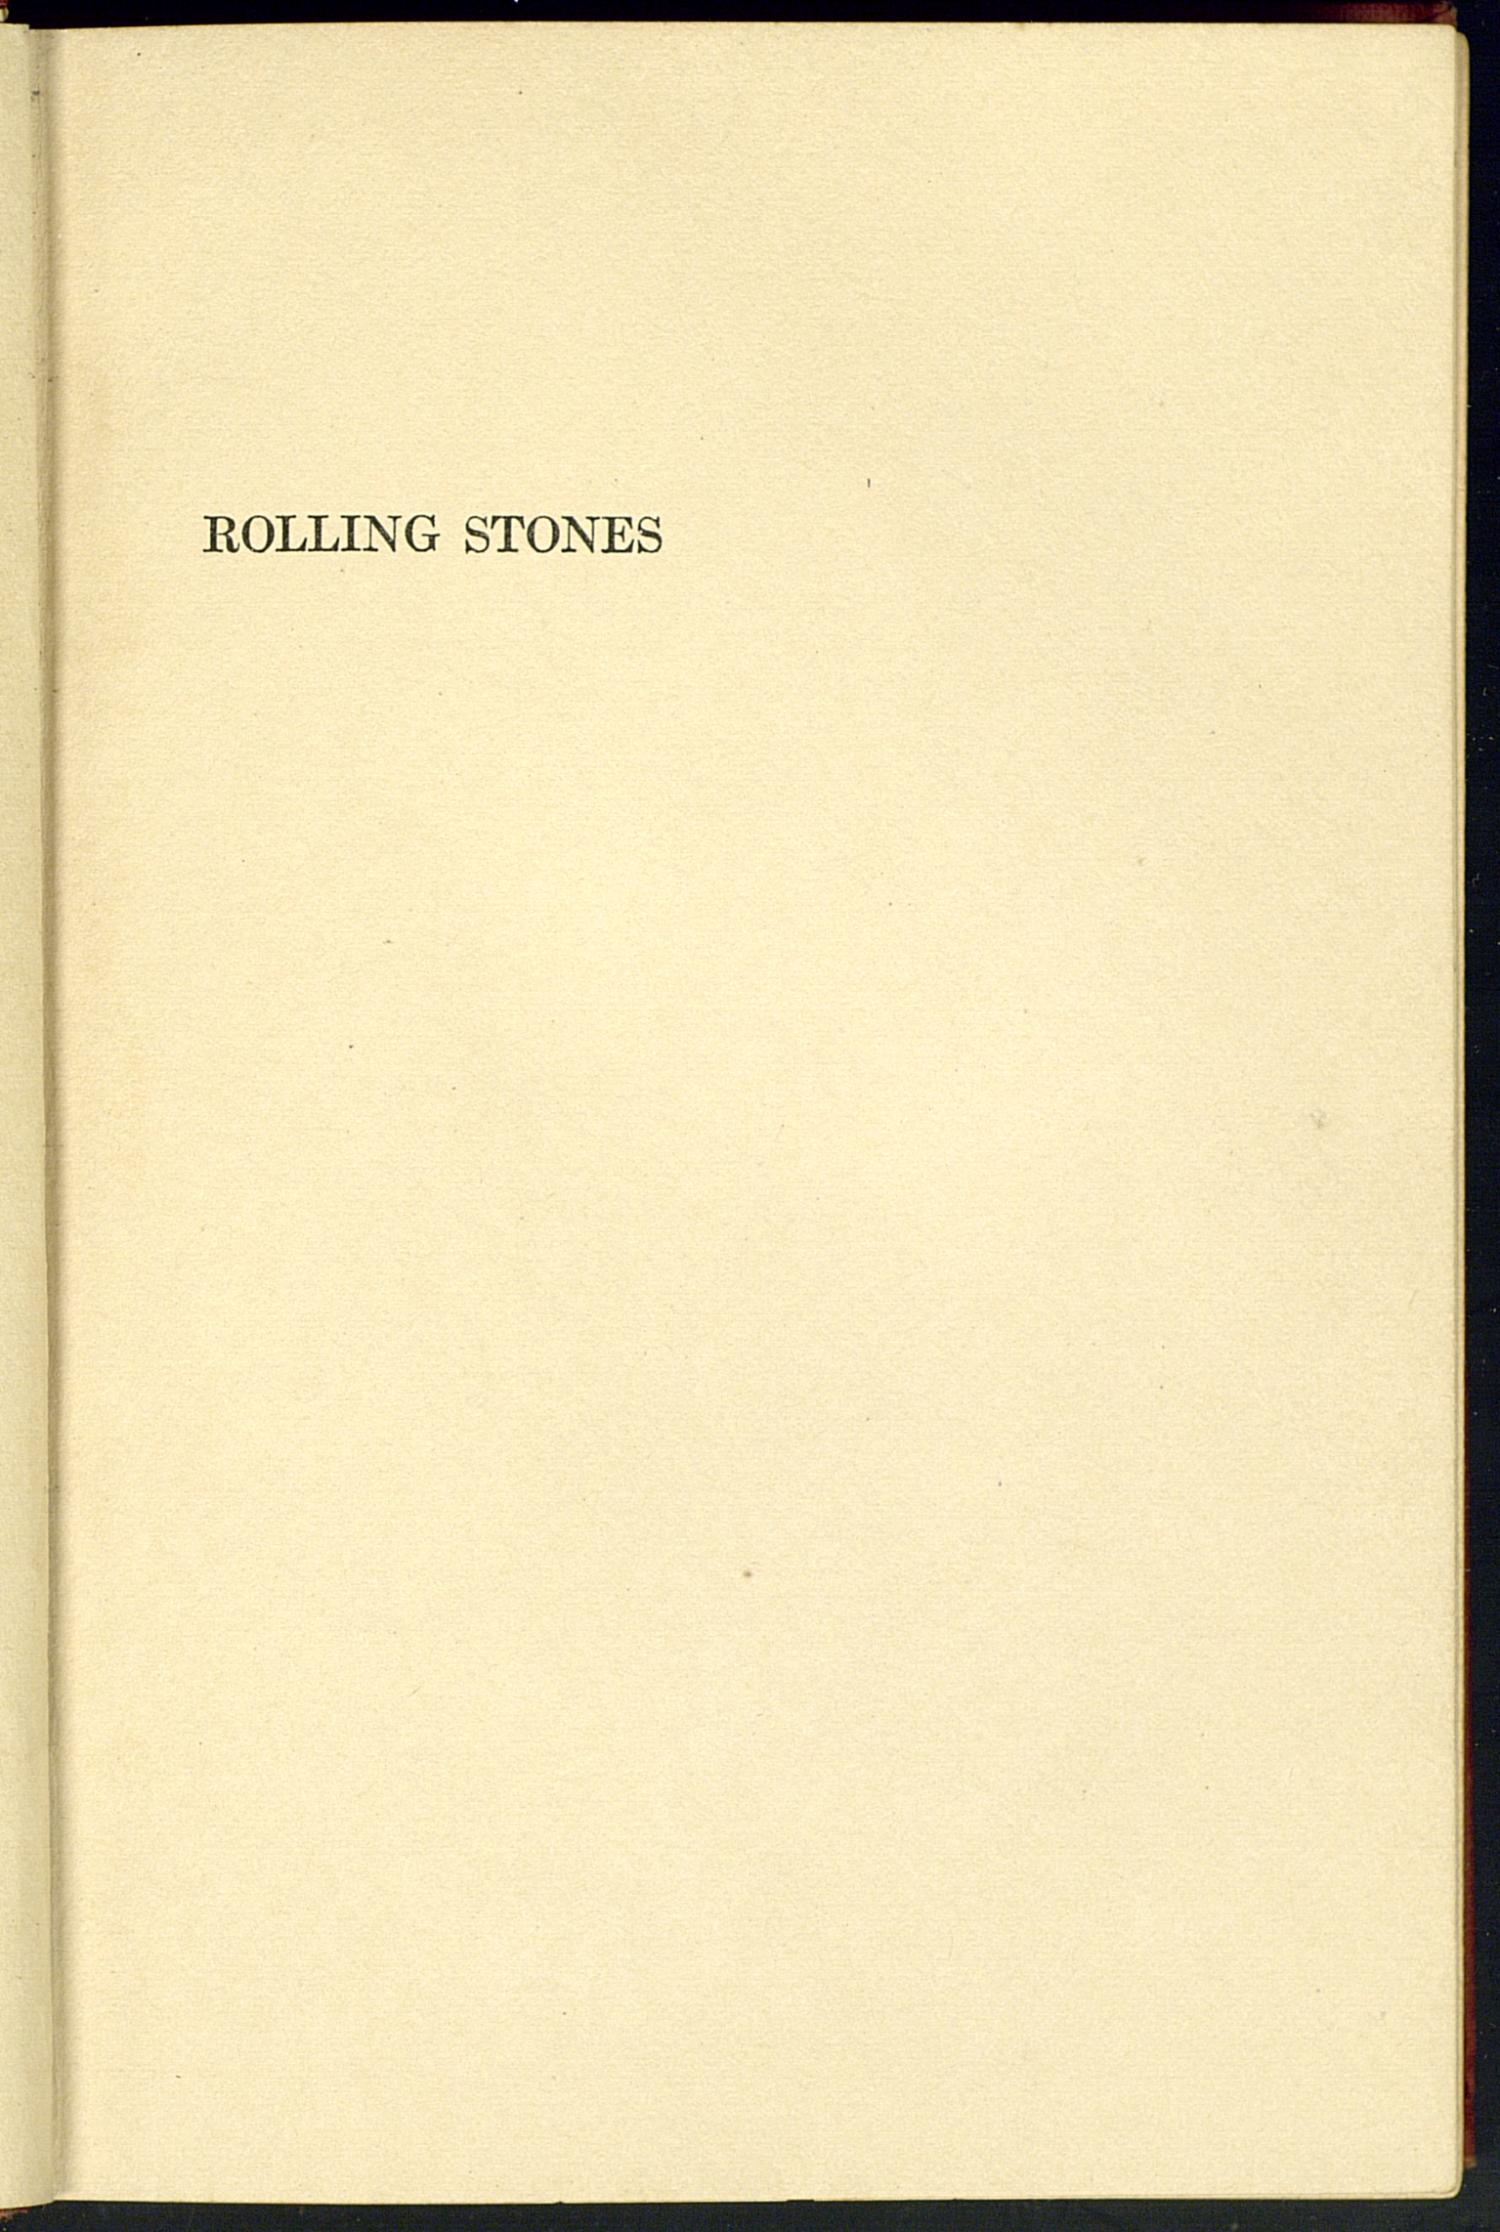 Rolling Stones                                                                                                      Half-Title Page